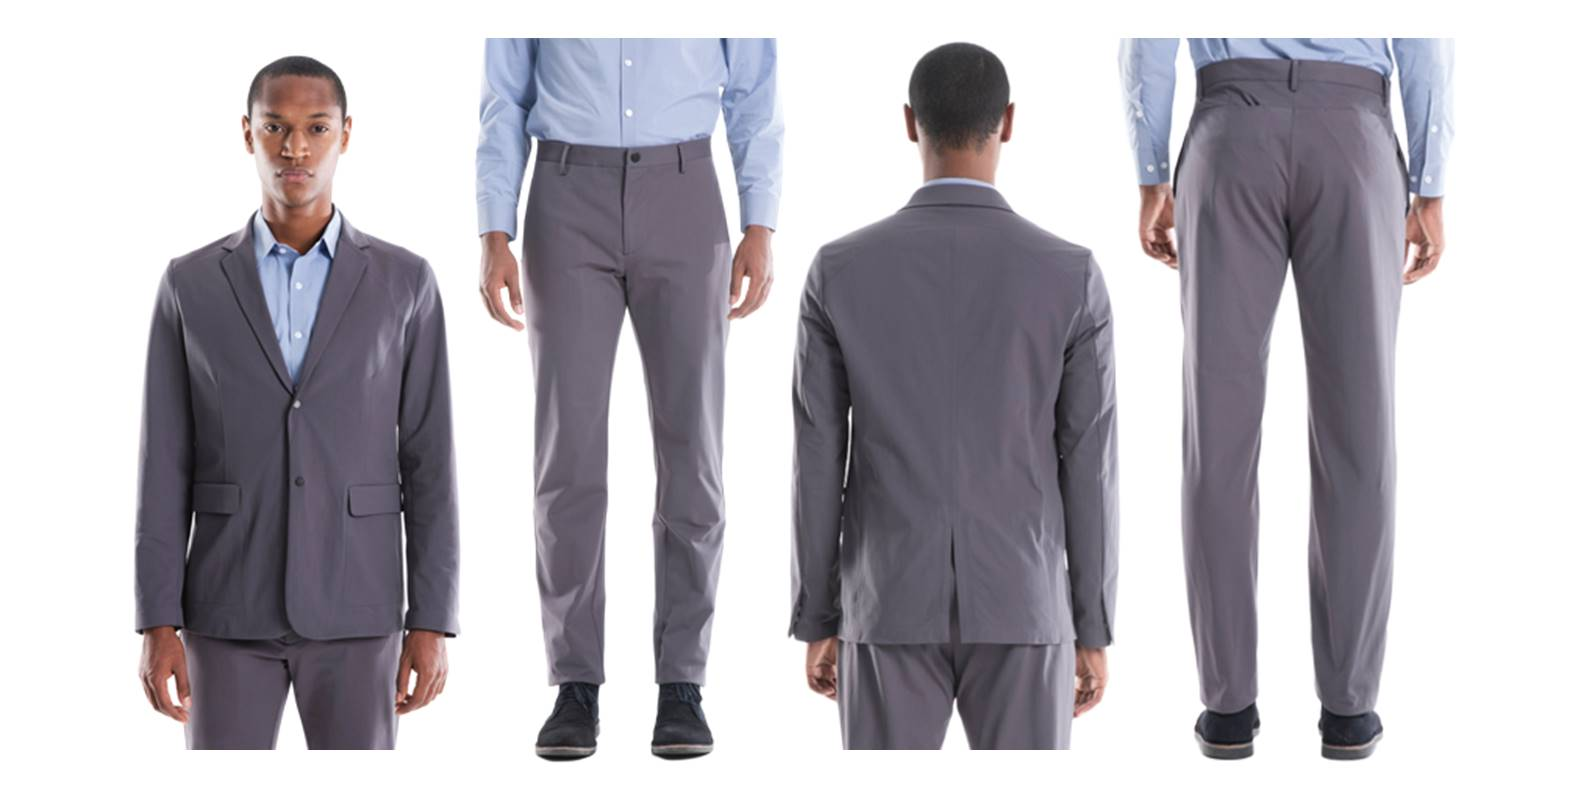 aviator 2 suit front and back